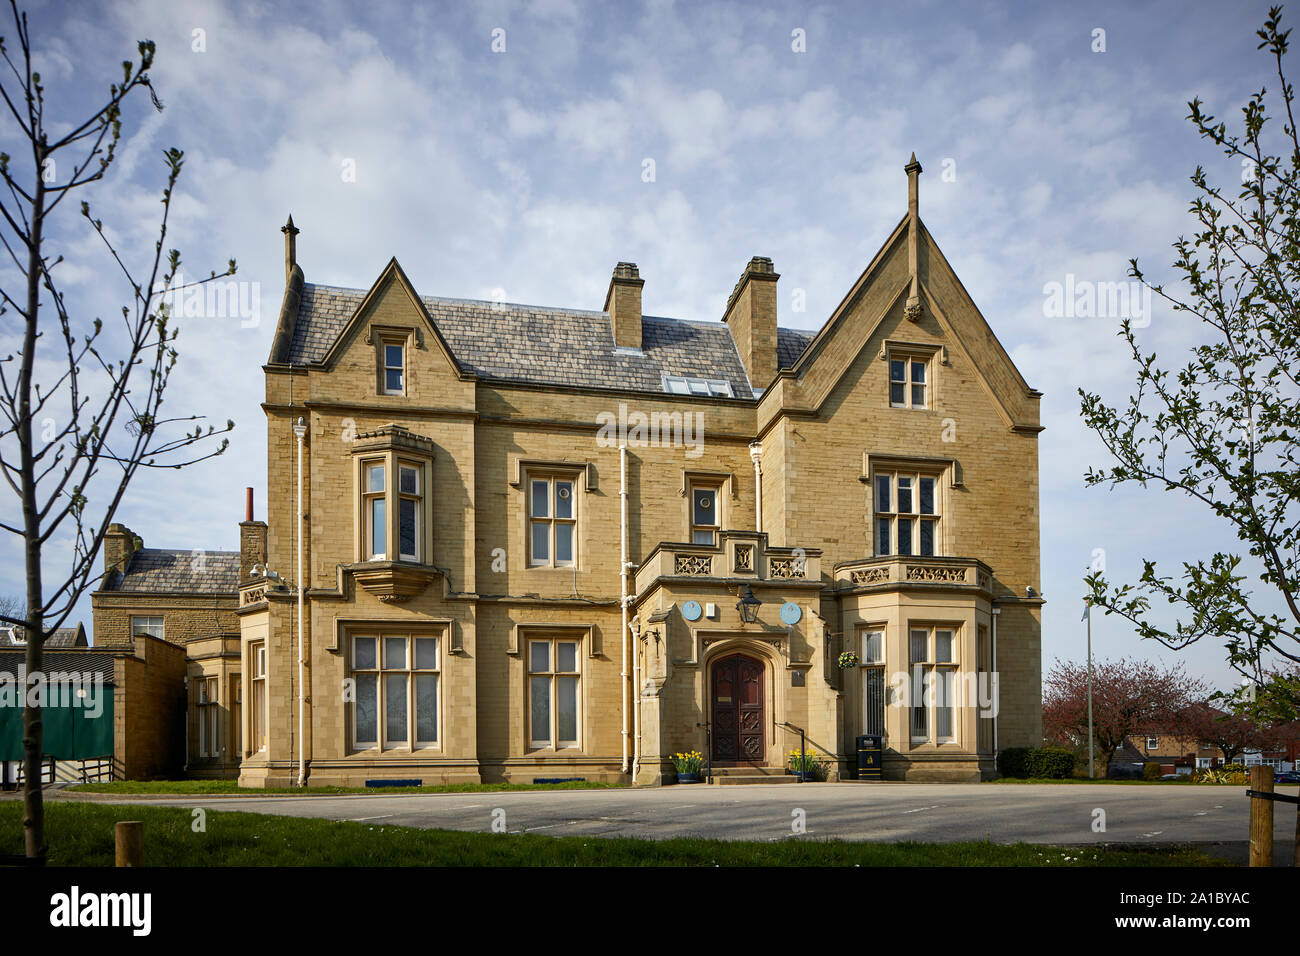 Tameside Ryecroft Hall Manchester Rd, Audenshaw, beautiful Grade II listed civic building donated to the people of Audenshaw by Austin Hopkinson in 19 Stock Photo